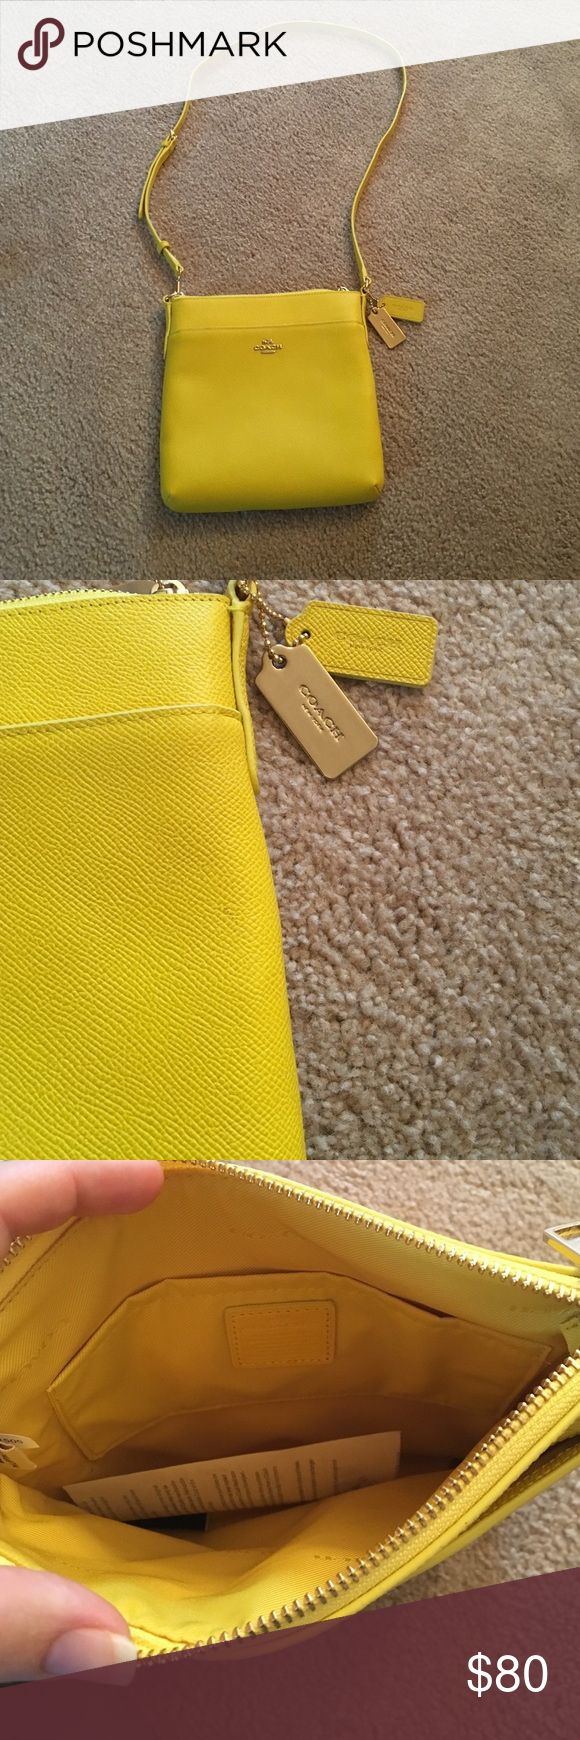 """Coach Swingpack Yellow swingpack - wear on shoulder or crossbody. Never used. Small mark, see picture.                                                                   7 3/4"""" (L) x 8 1/4"""" (H) x 1""""(W) Coach Bags Crossbody Bags"""